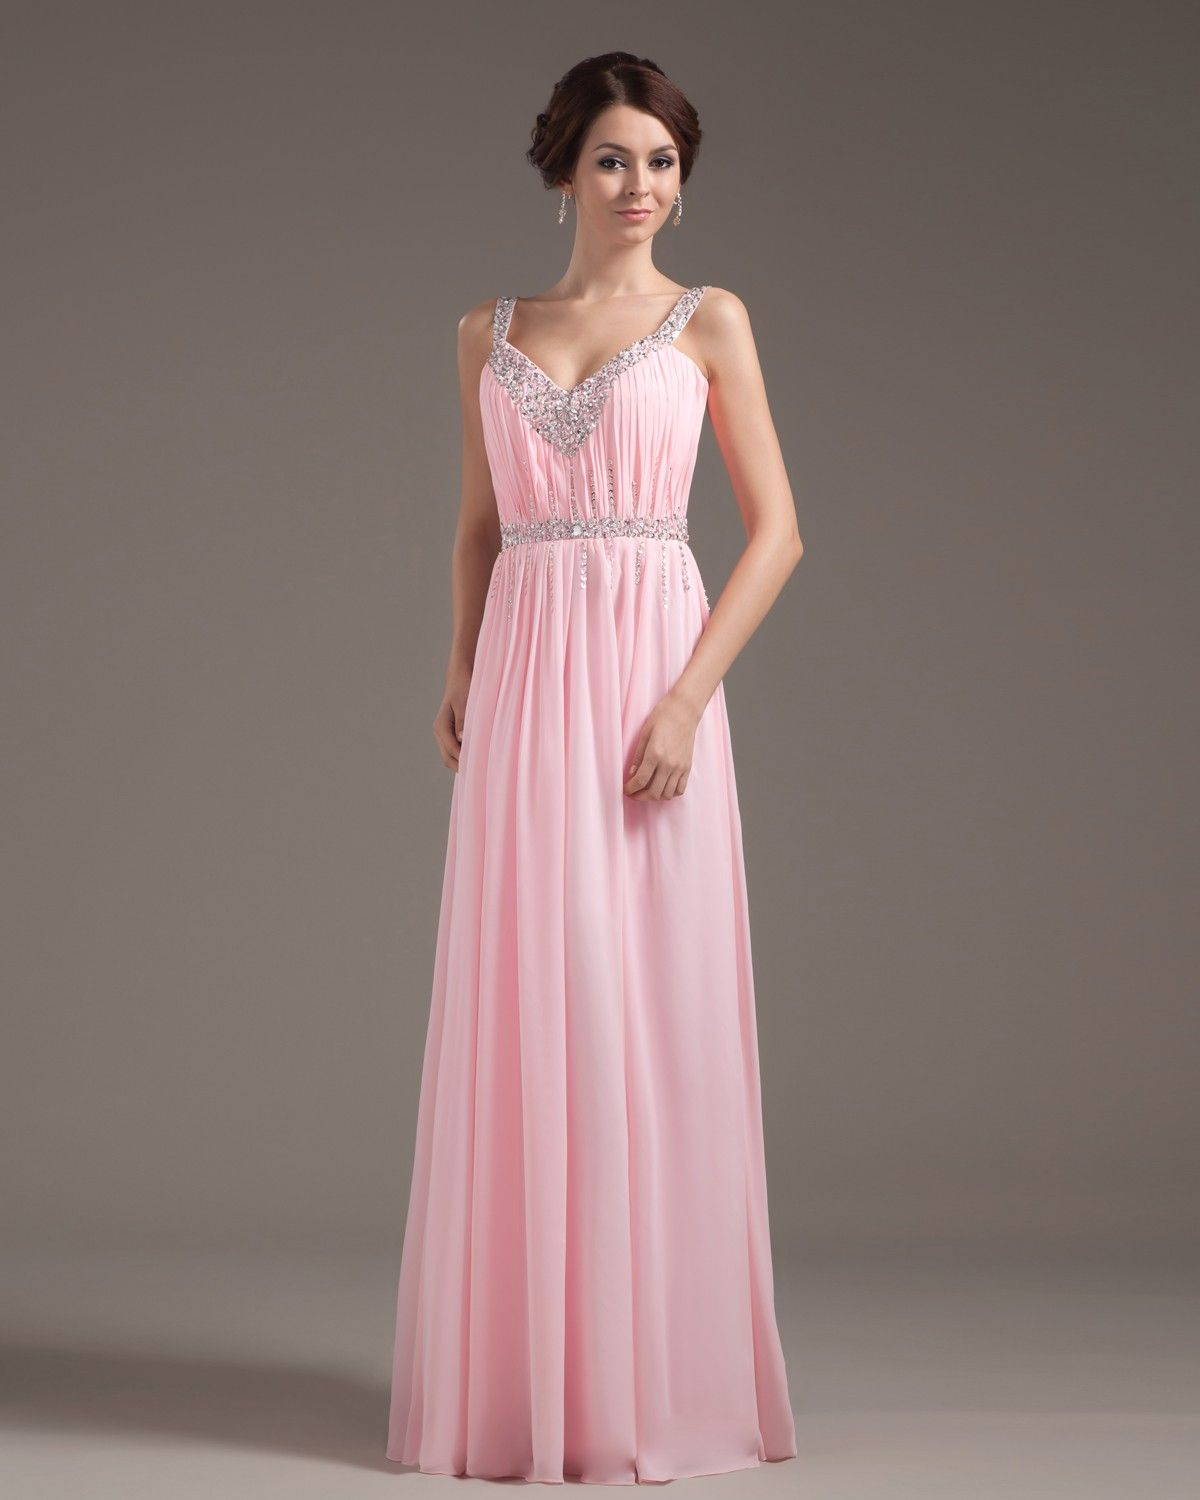 Simple pink dress Gowns